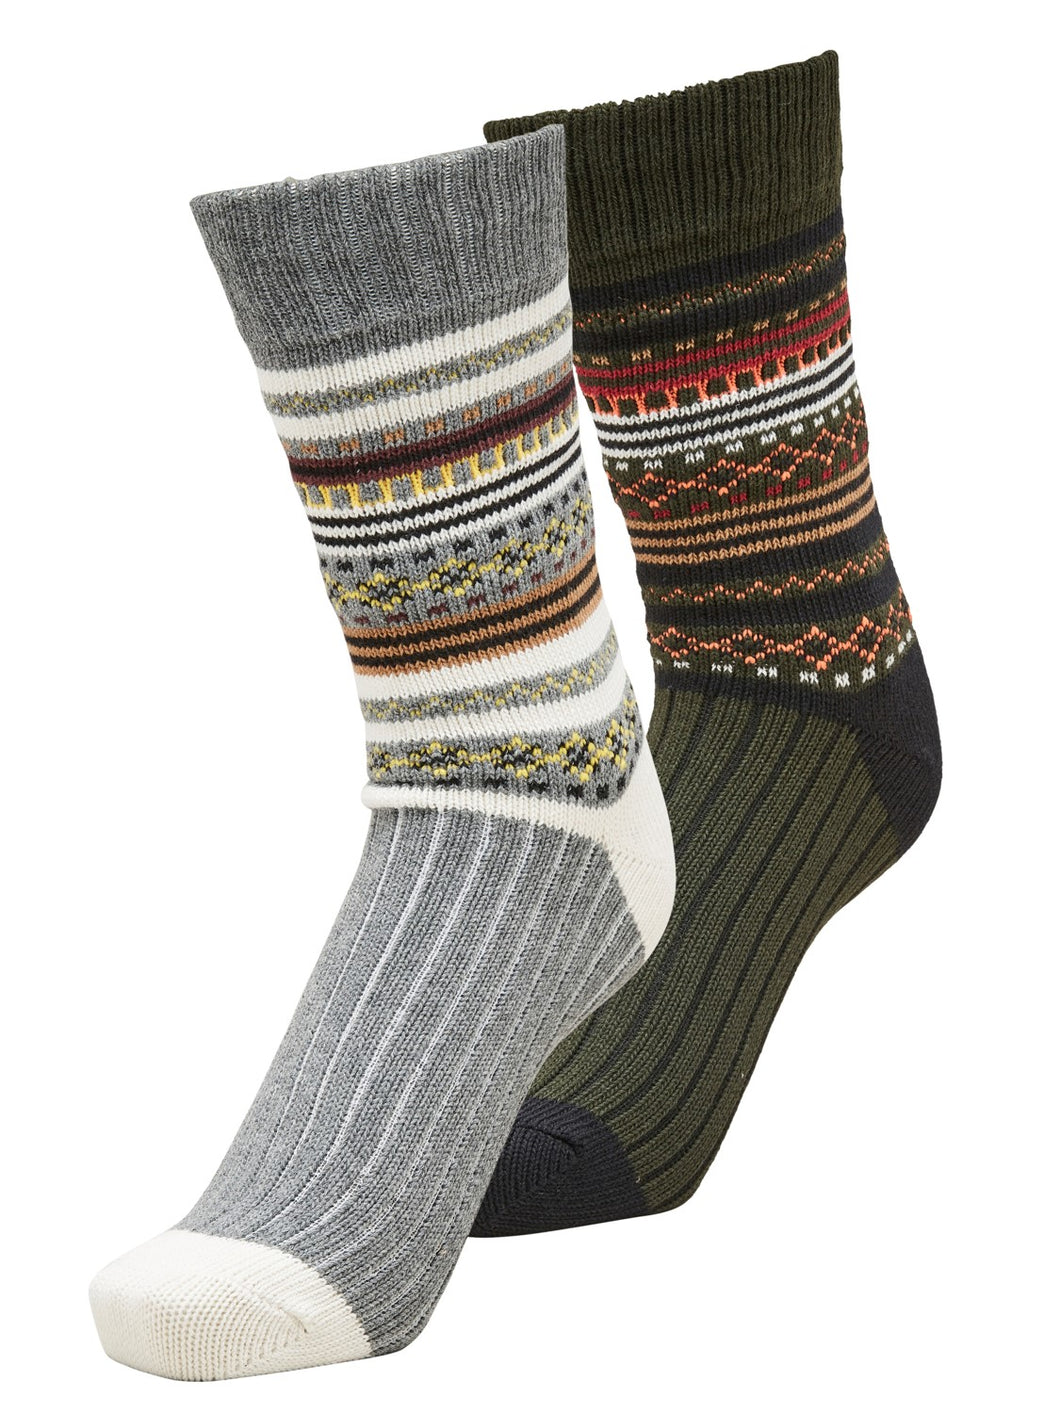 Selected Homme Heavy Nordic 2 Pack Socks